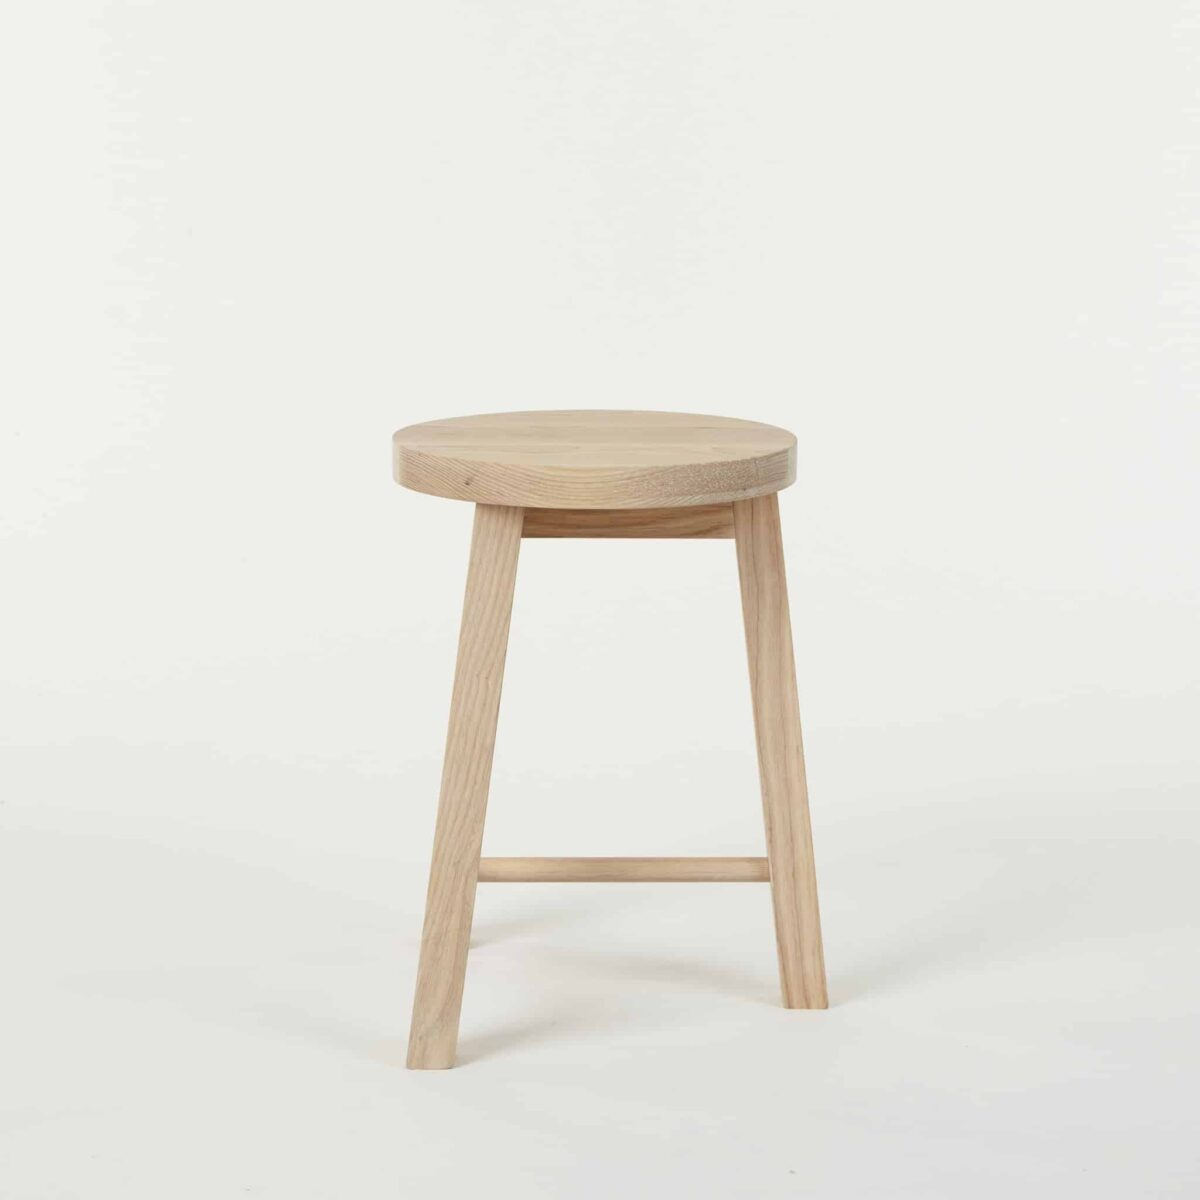 series-two-stool-round-ash-another-country-006